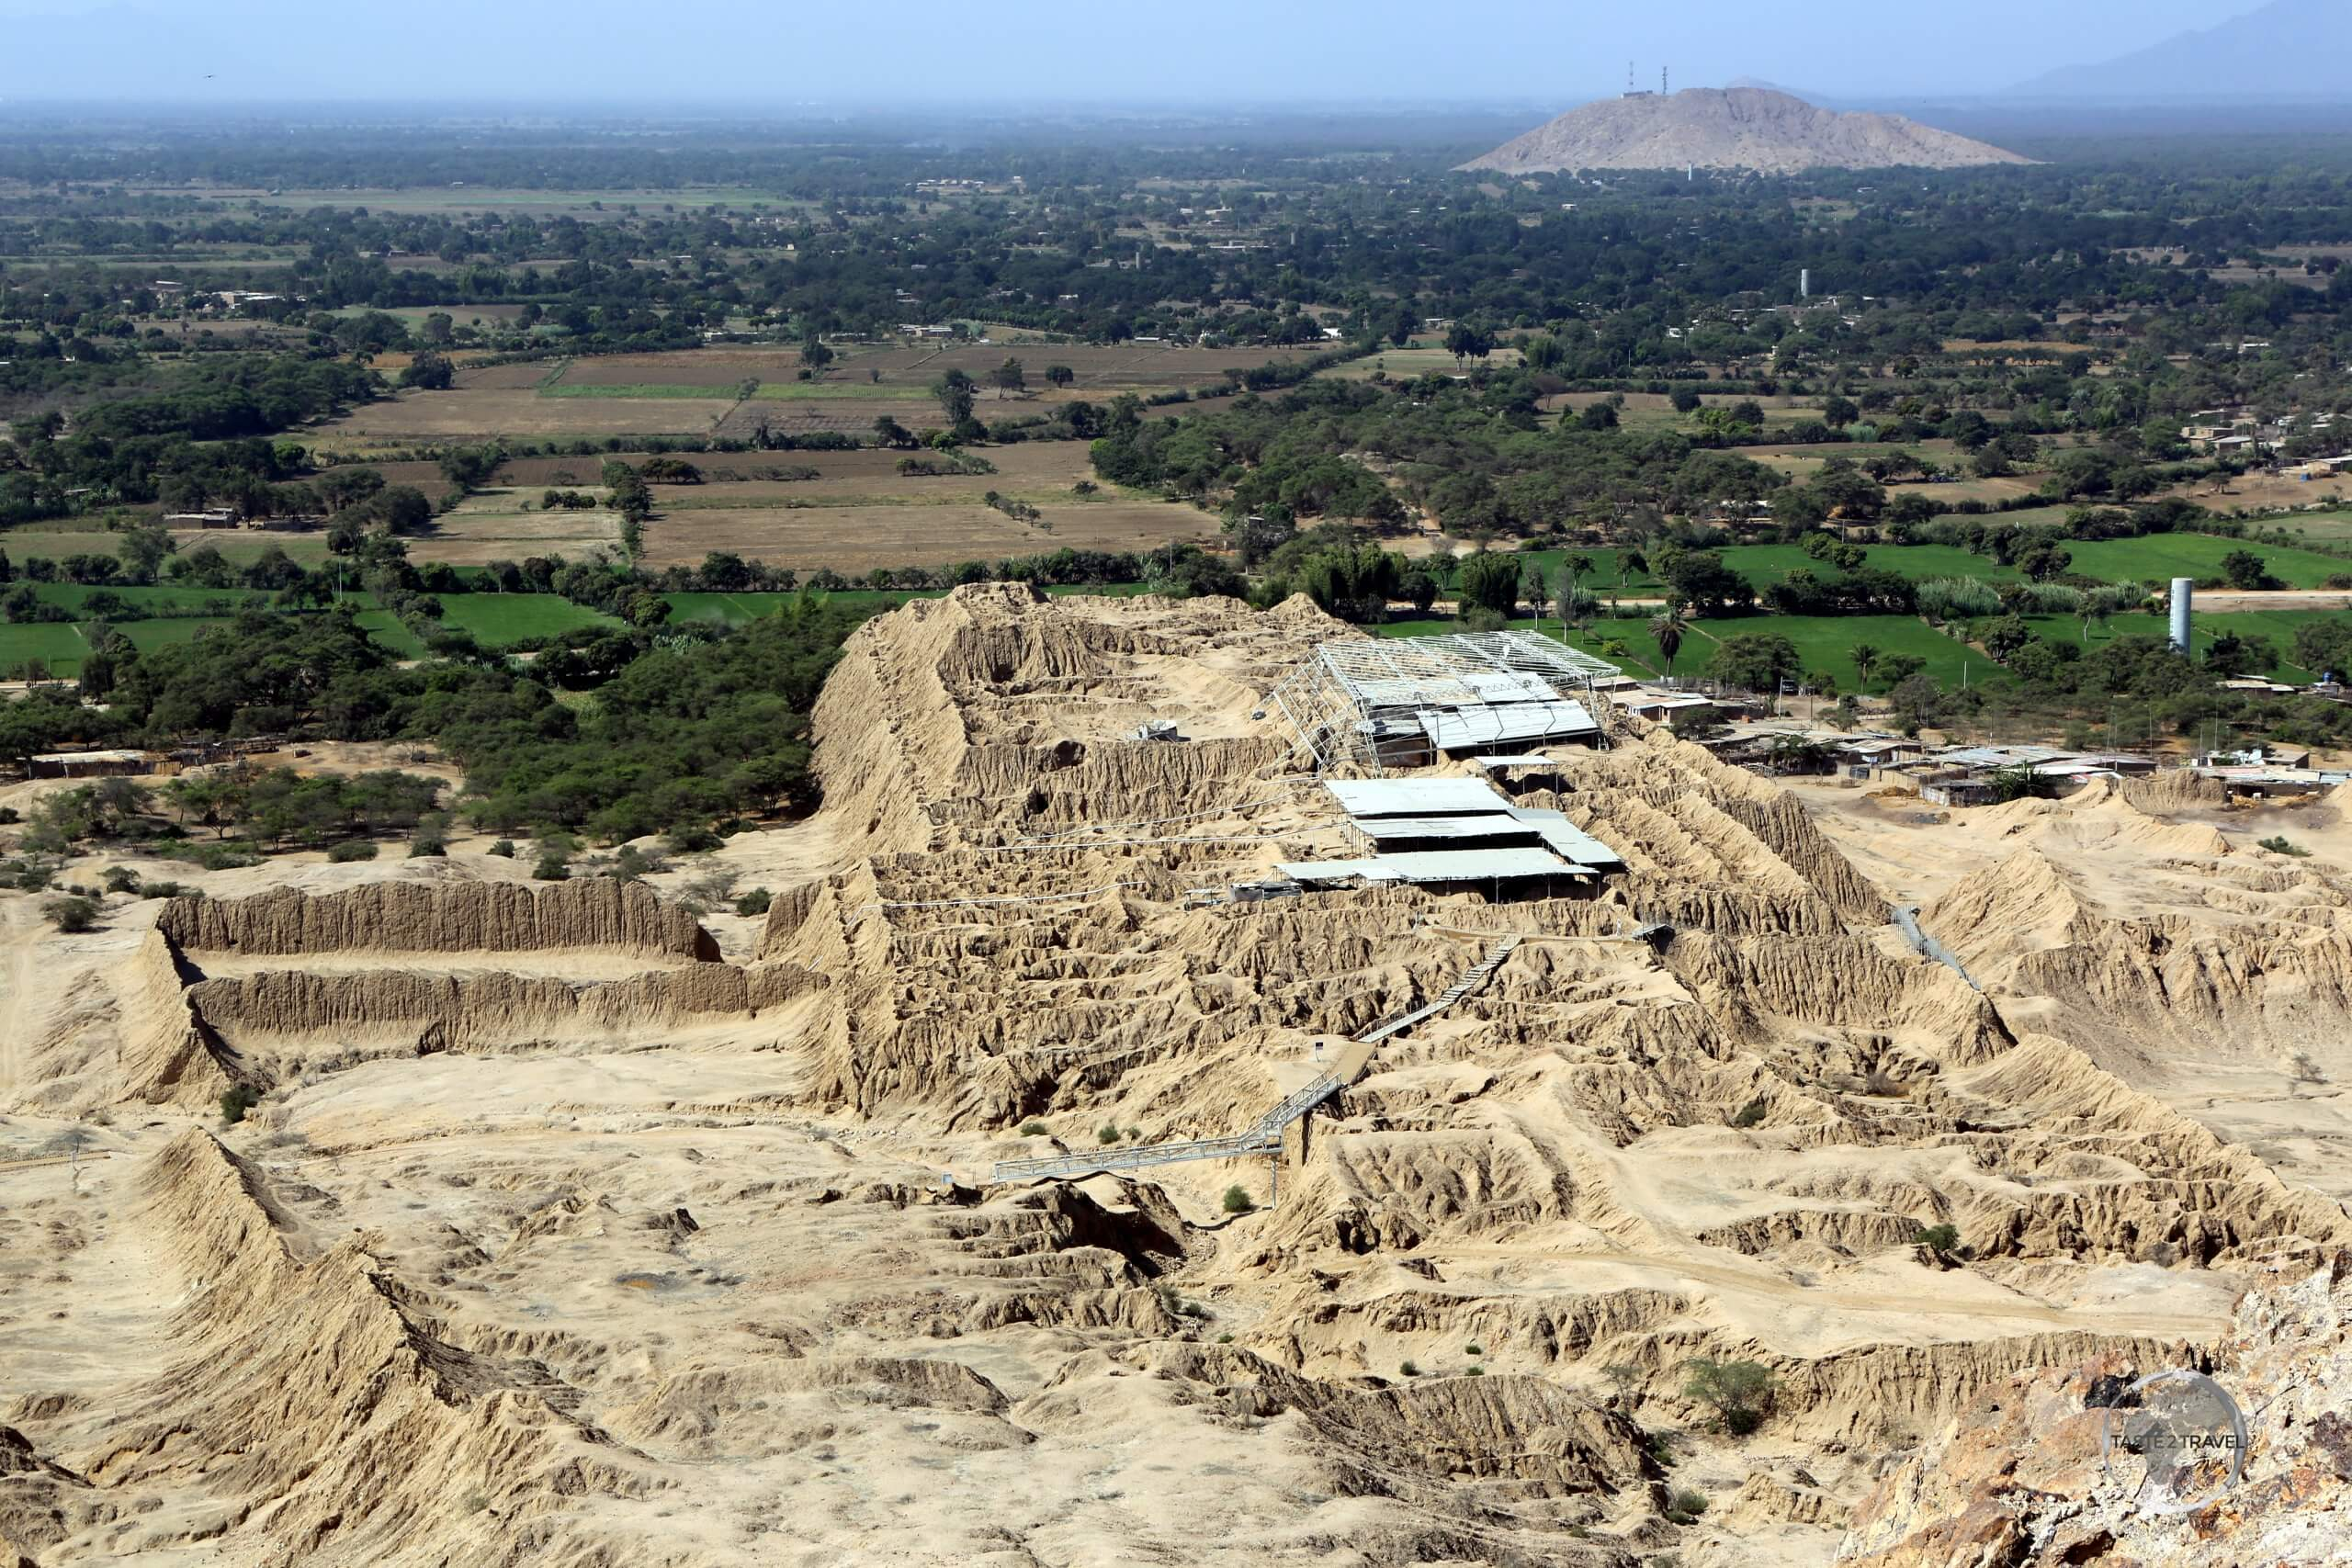 Built in 1100 AD by the Sican culture, then conquered by the Chimú, and later by the Inca, the huge mud-brick pyramid ruins of Túcume lies 29 km north of Chiclayo.